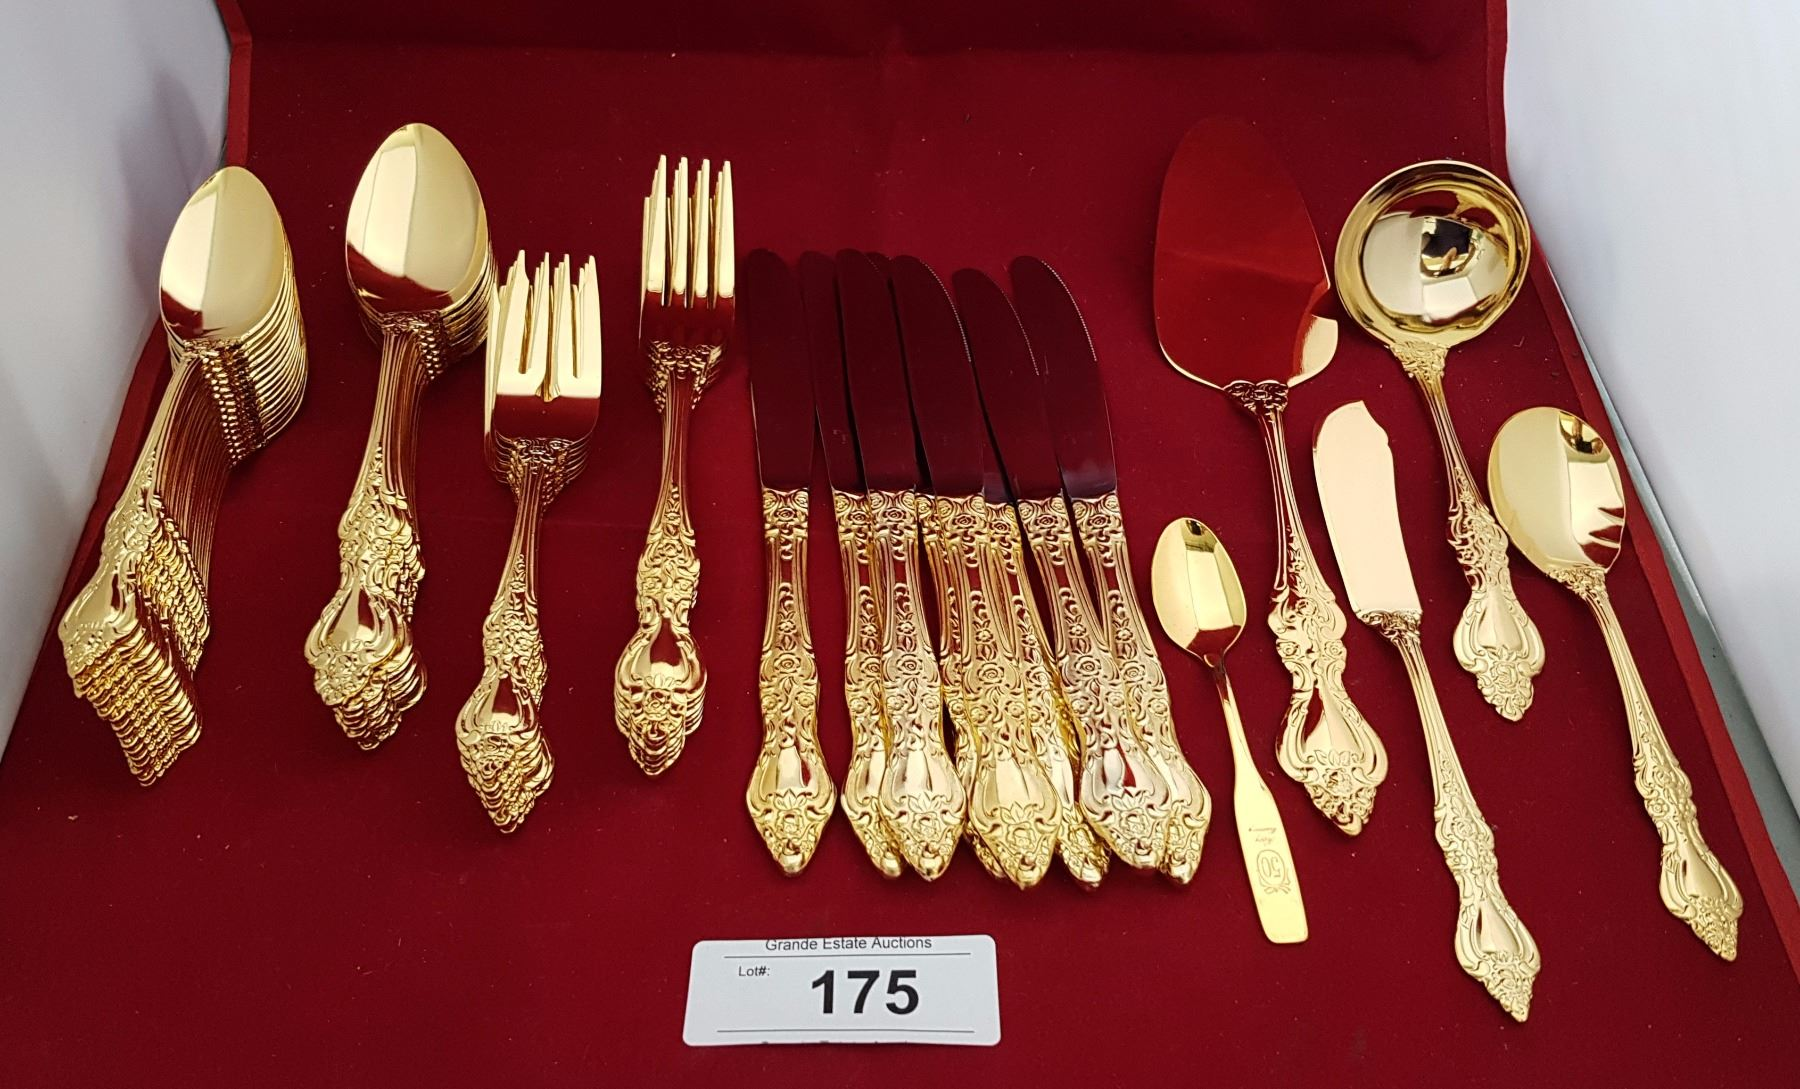 Image 1  45 PC ROYAL SEALY GOLD PLATED FLATWARE SET ...  sc 1 st  iCollector.com & 45 PC ROYAL SEALY GOLD PLATED FLATWARE SET